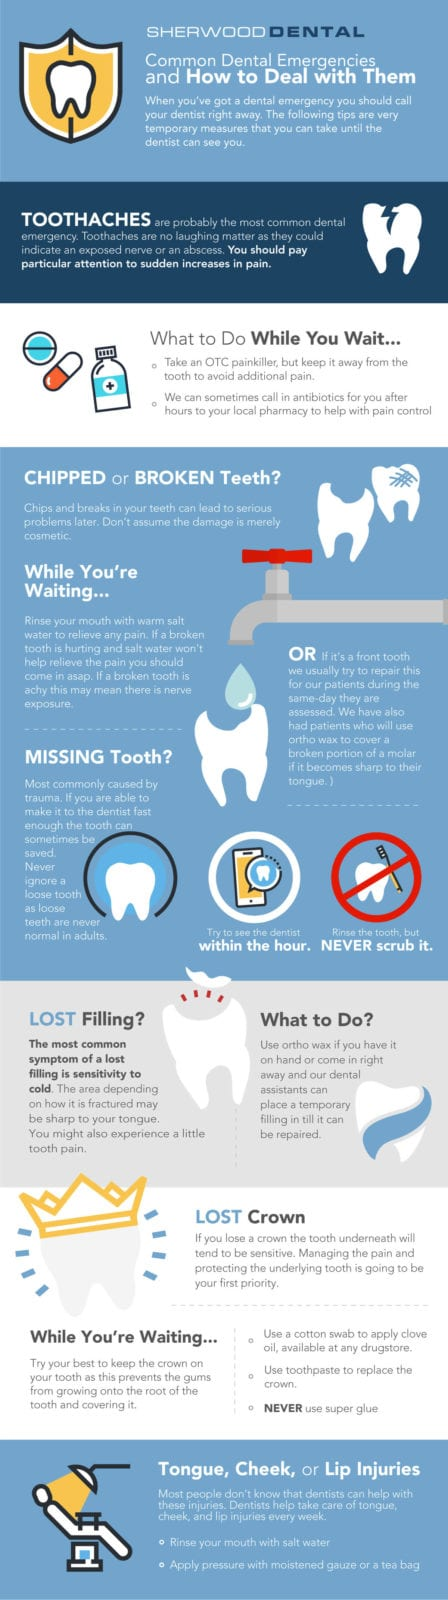 Common Dental Emergencies and How to Deal With Them